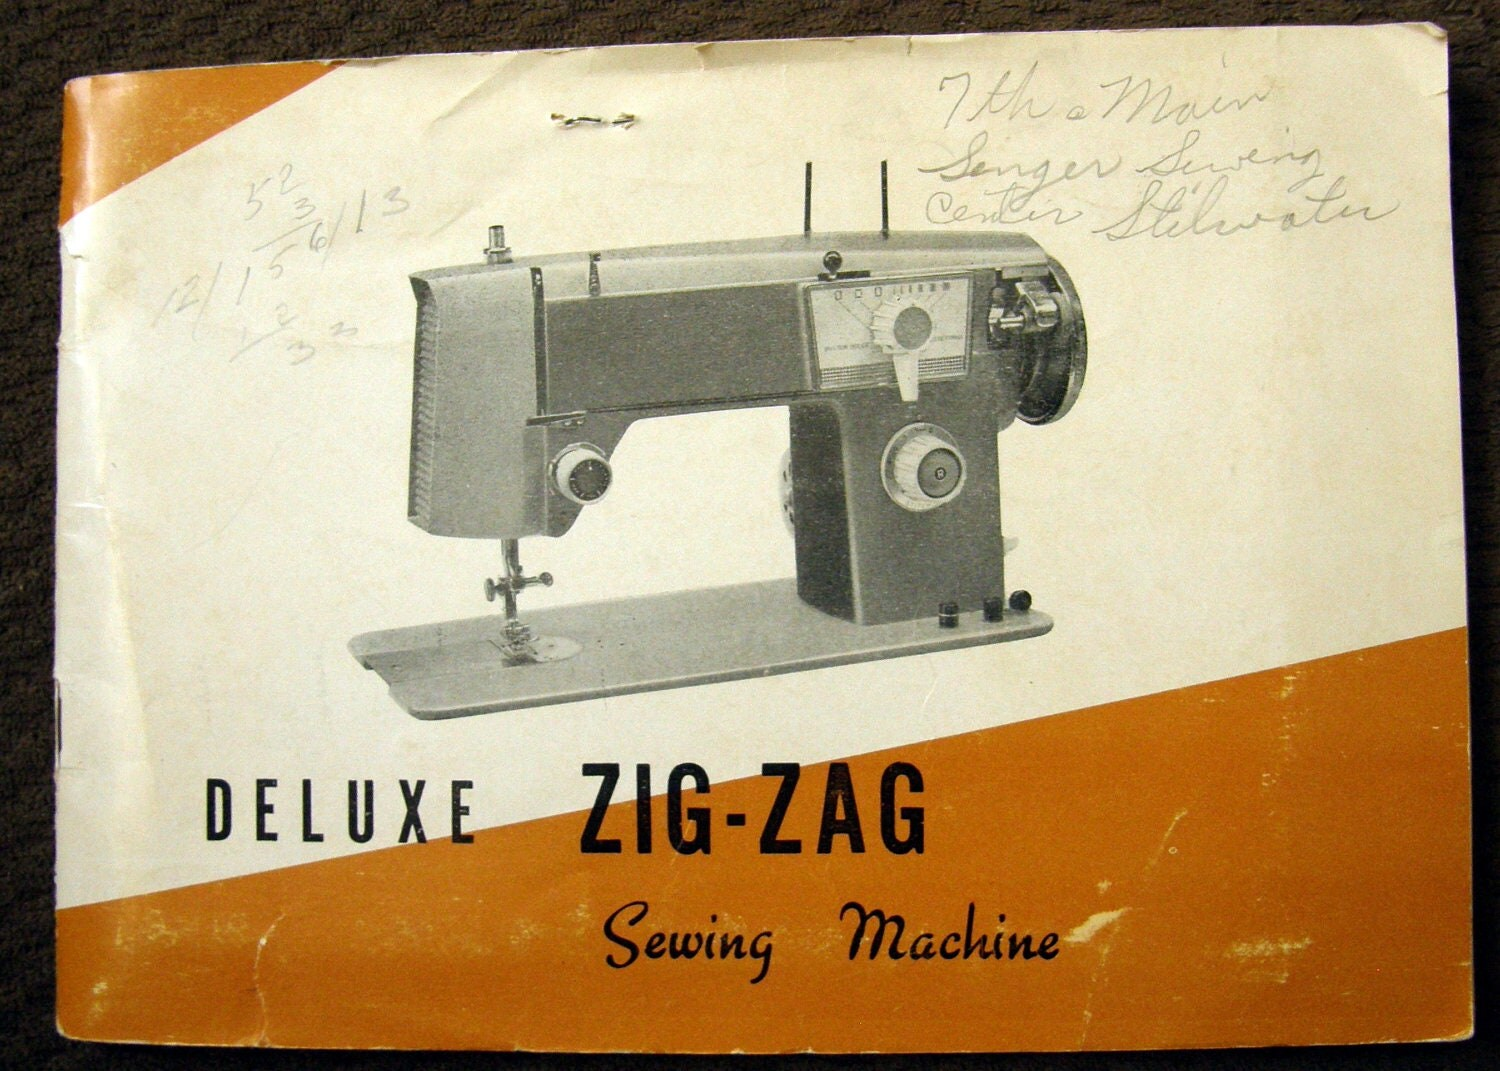 deluxe zig zag sewing machine